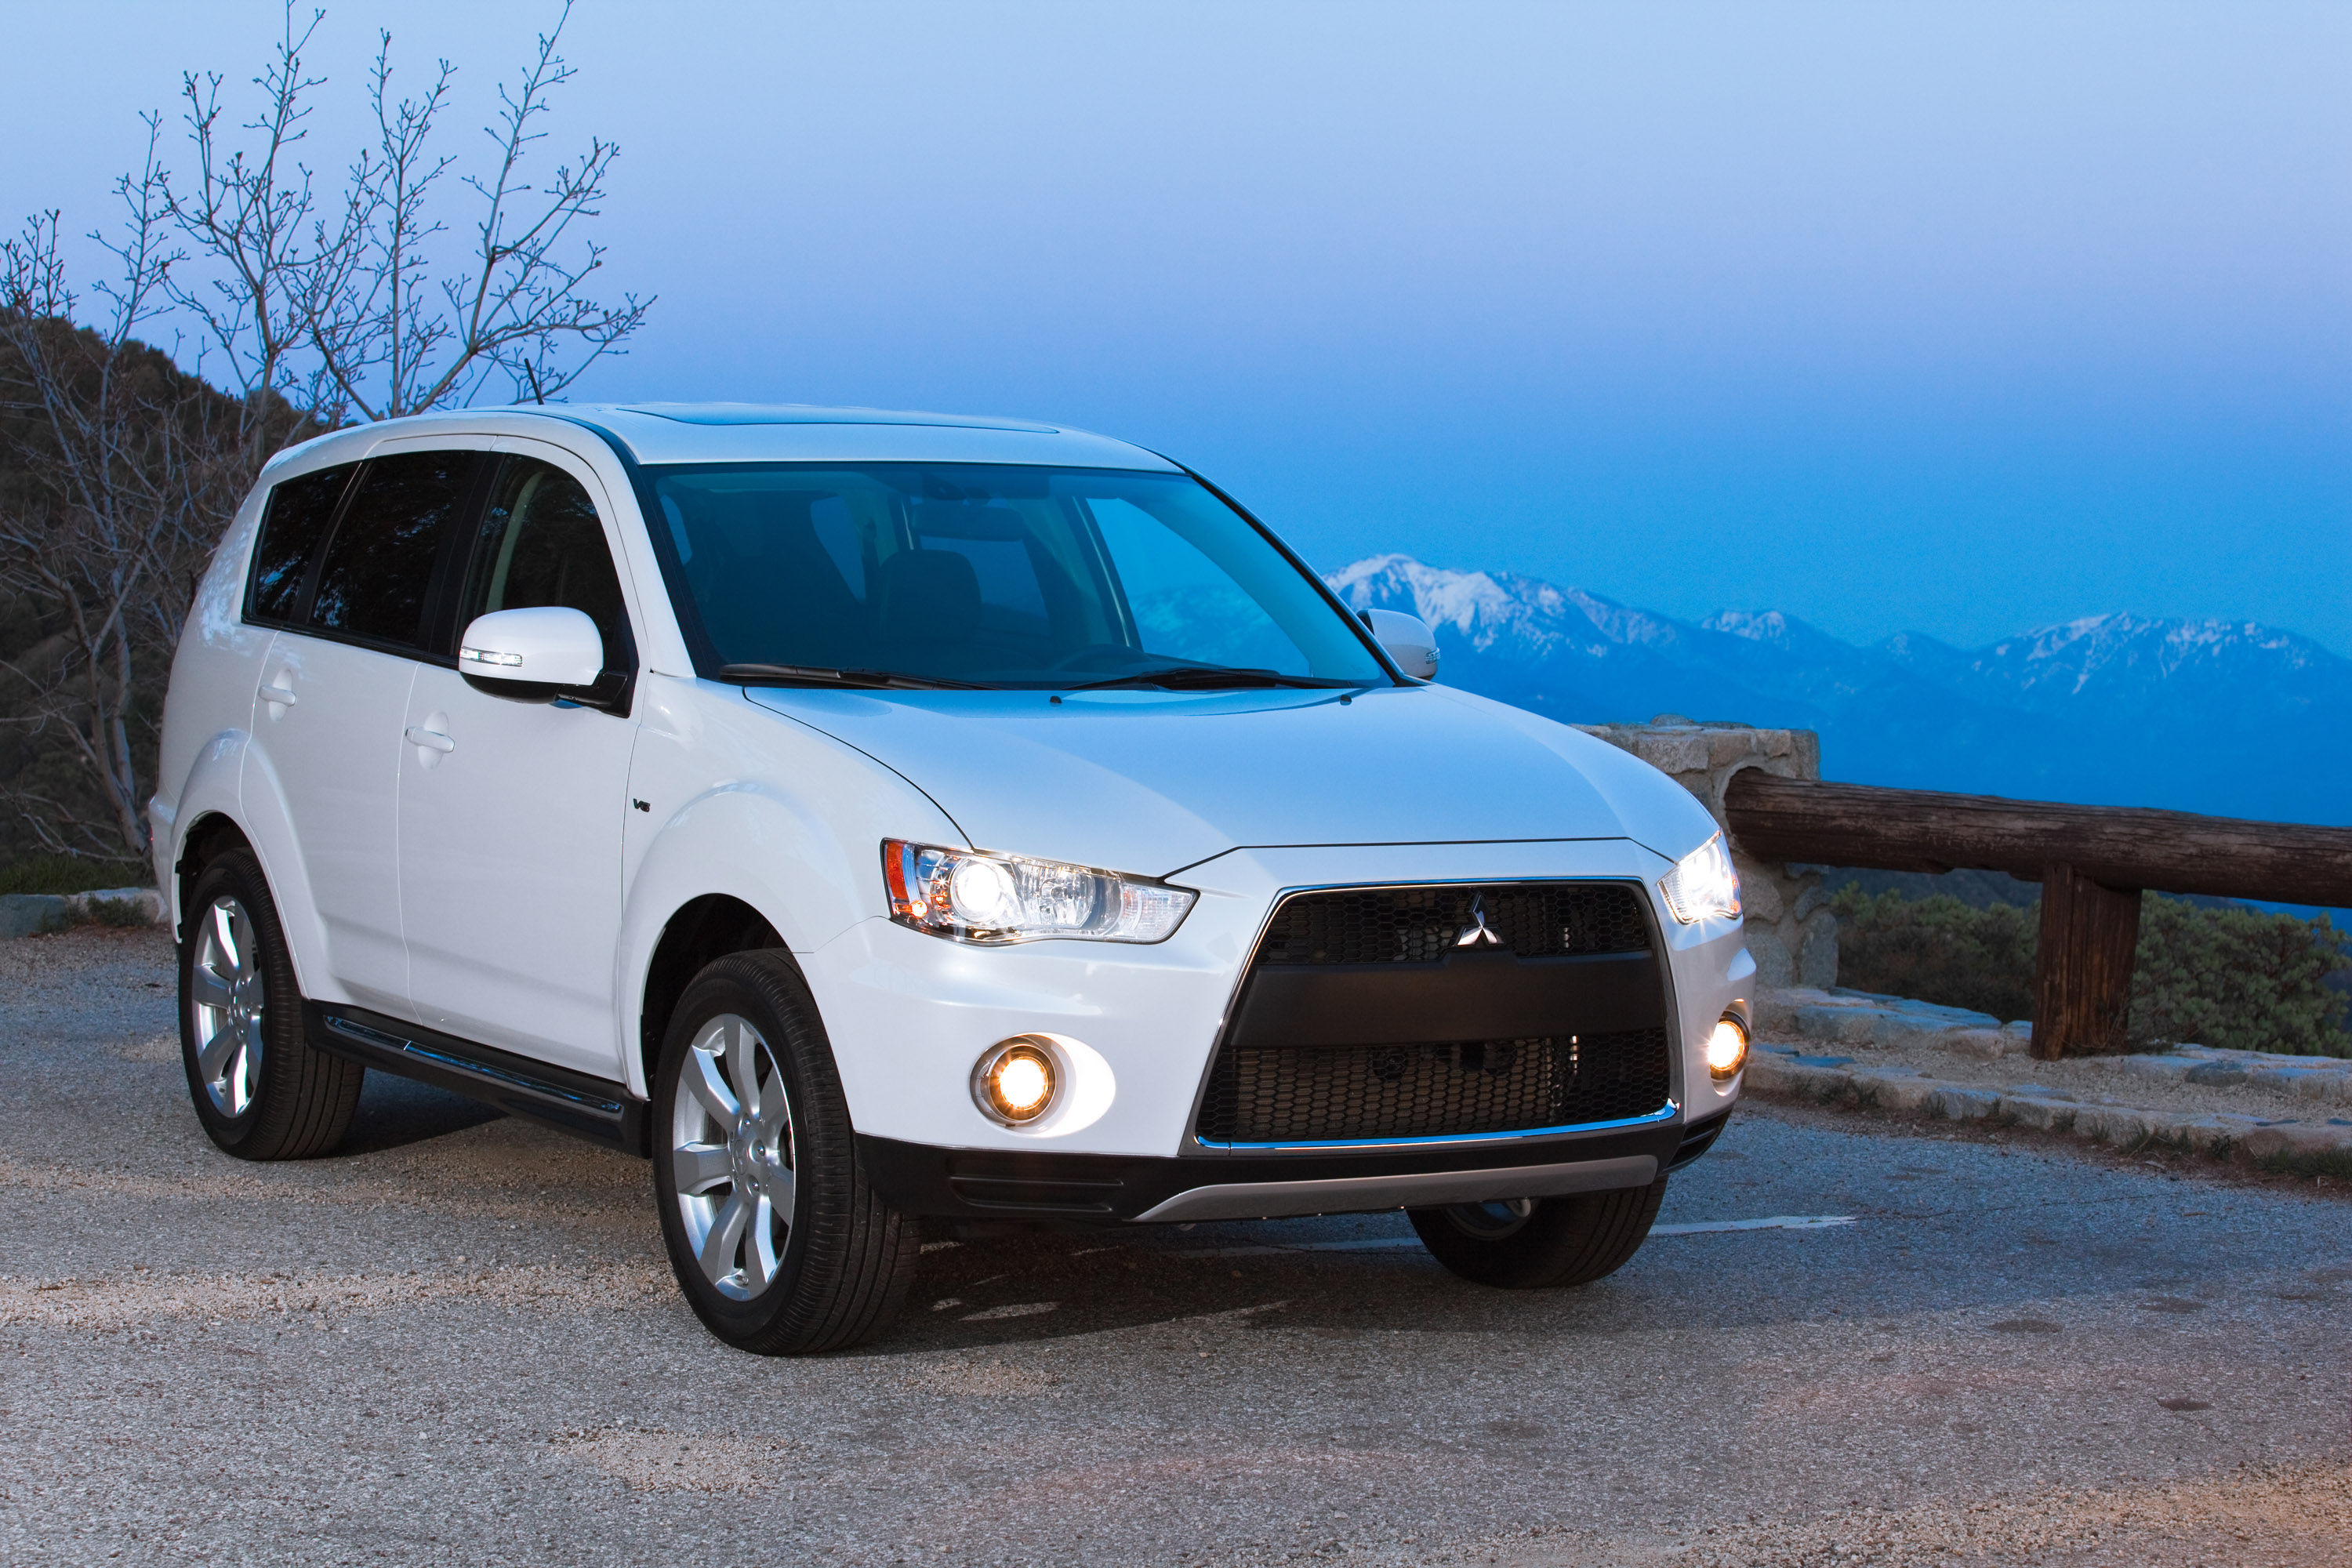 Mitsubishi Outlander photo #1